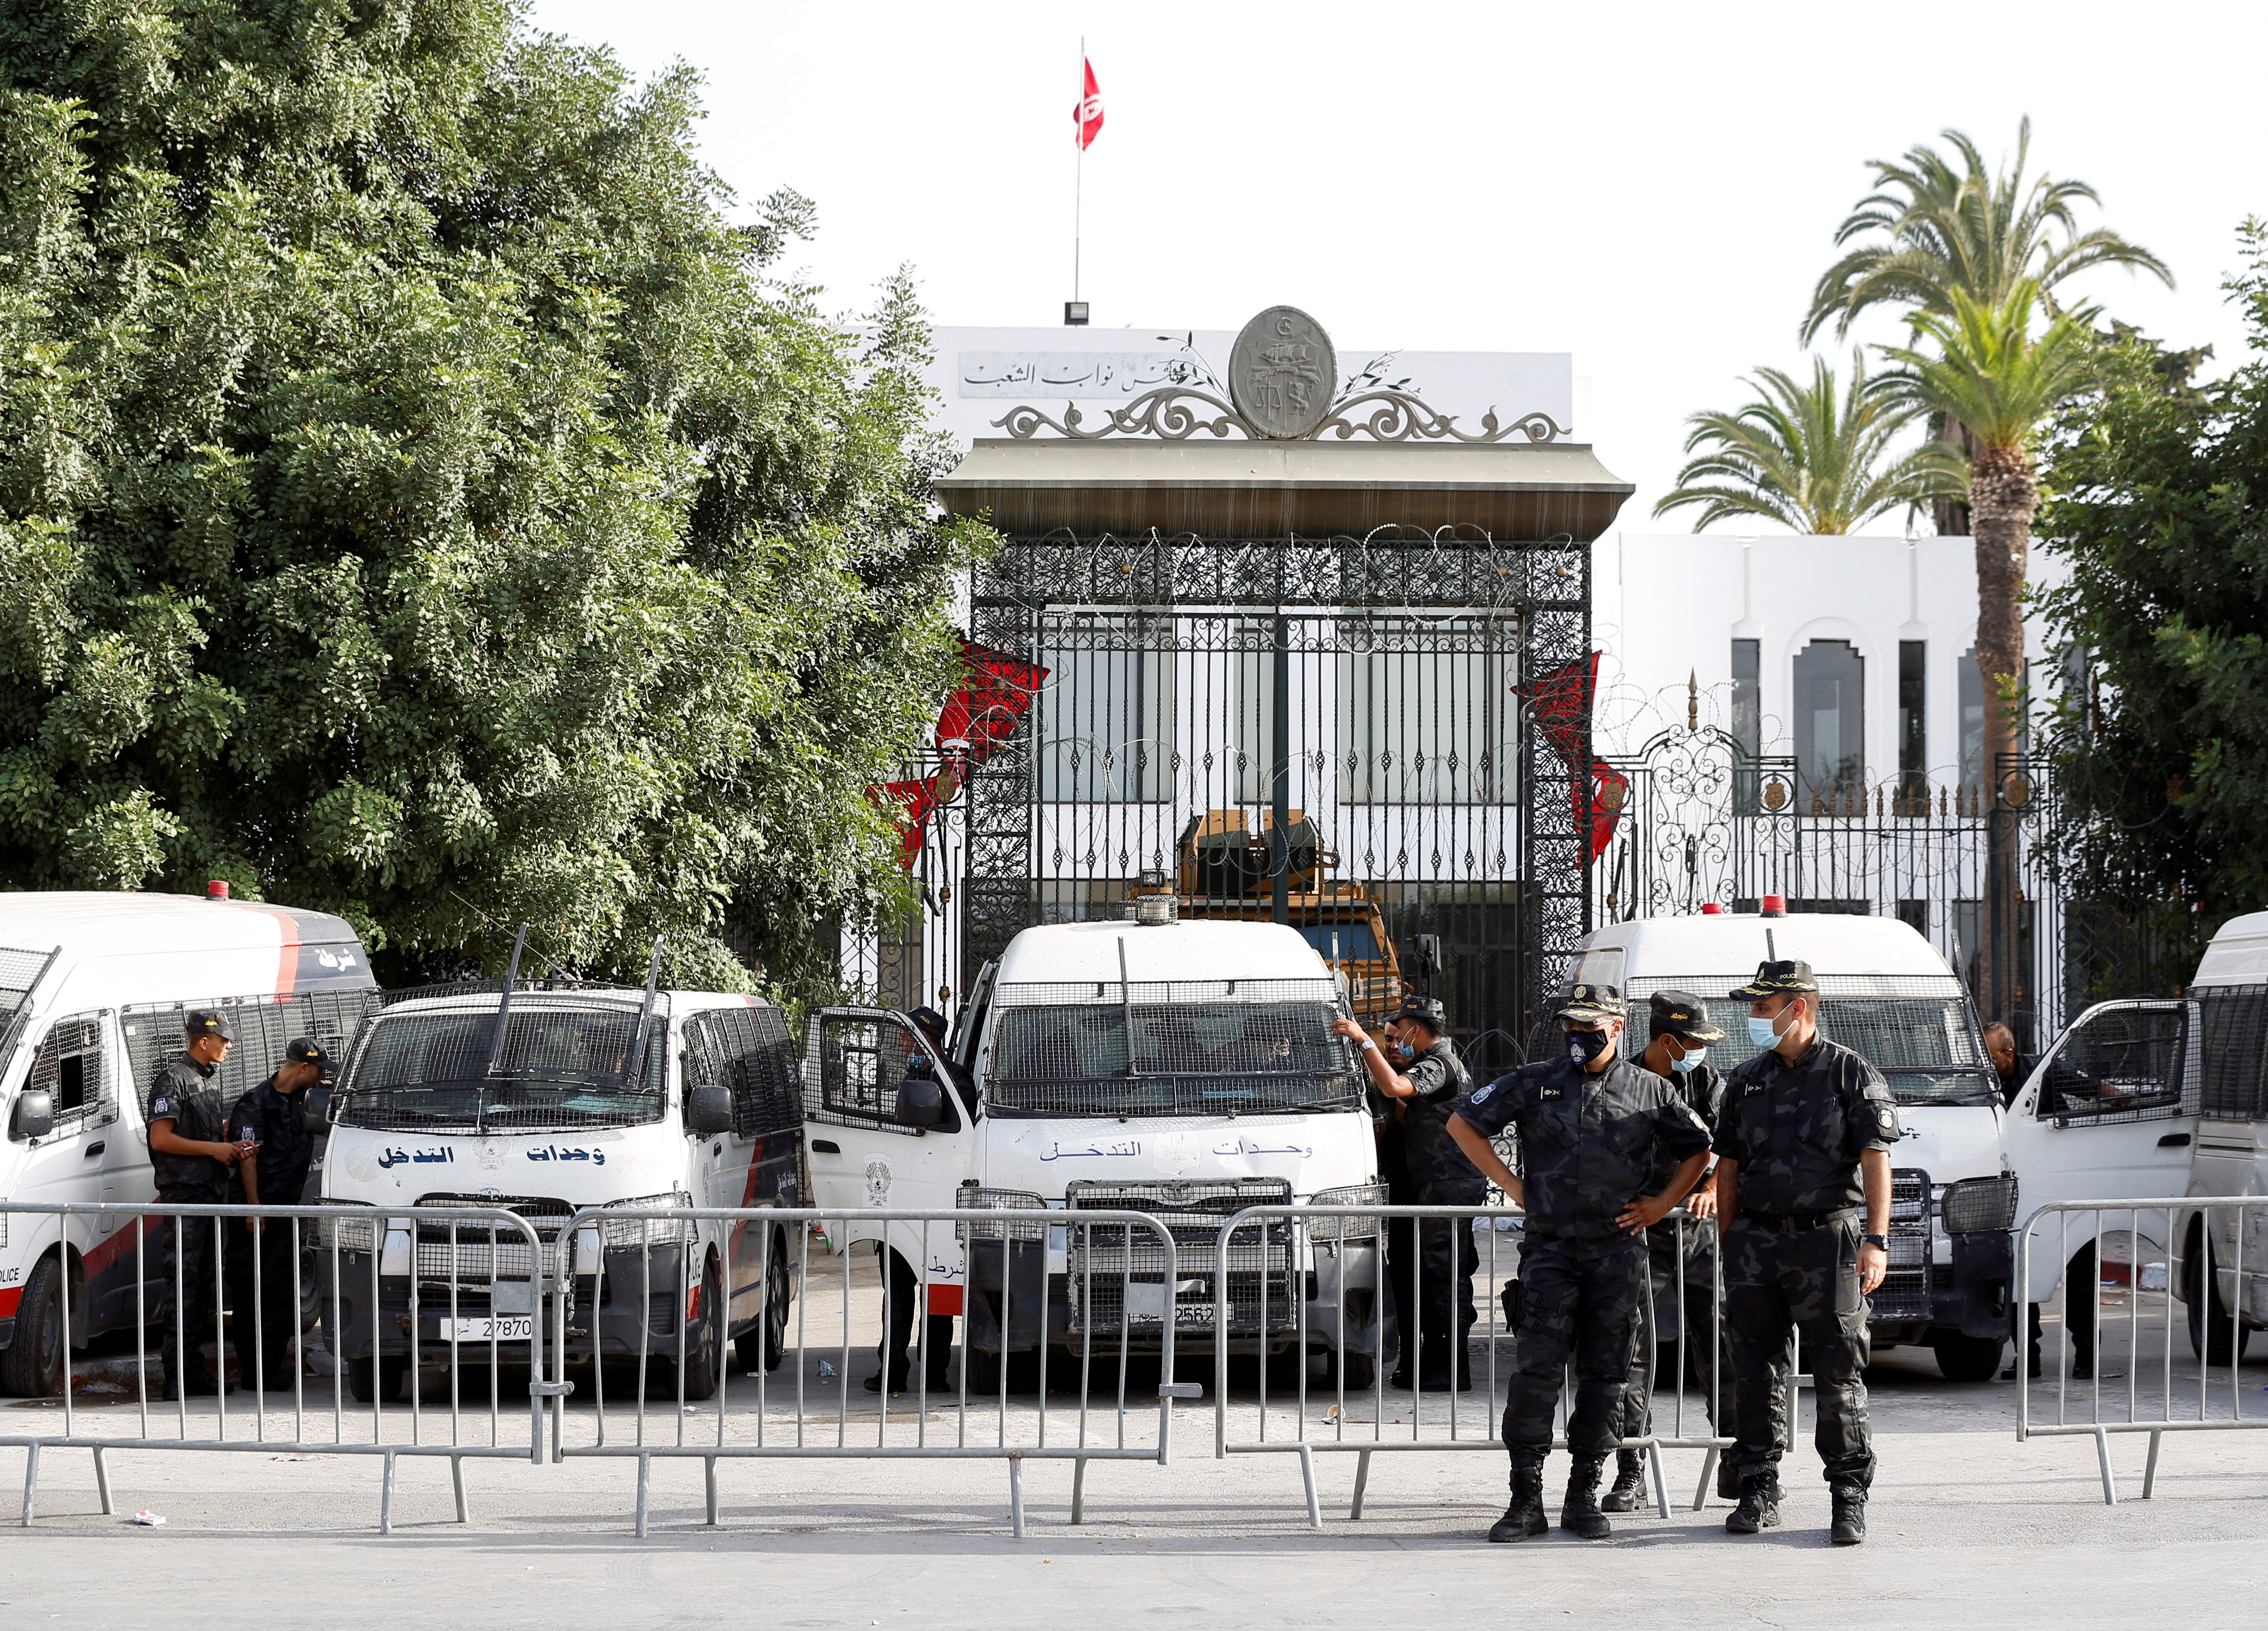 Police officers stand guard outside the parliament building in Tunis, Tunisia  July 27, 2021. REUTERS/Zoubeir Souissi